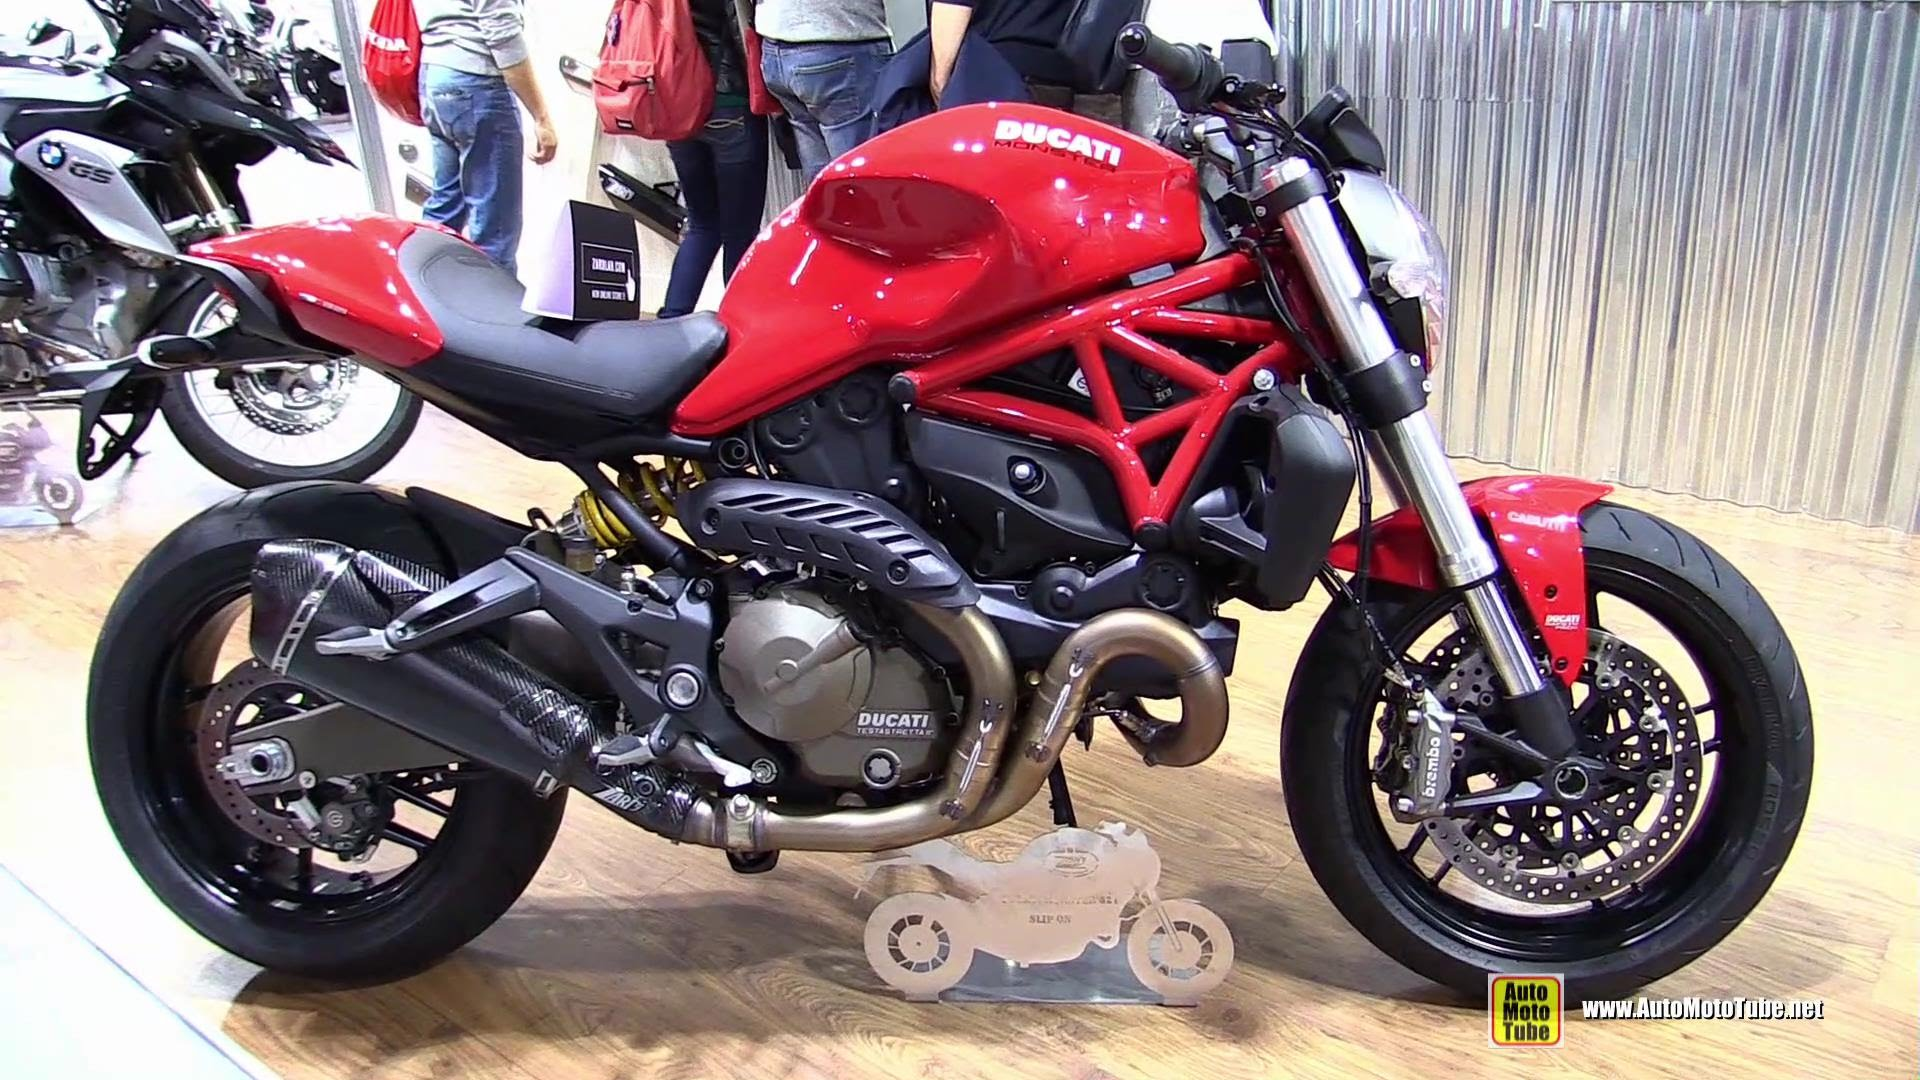 Ducati Monster 821 images #79380